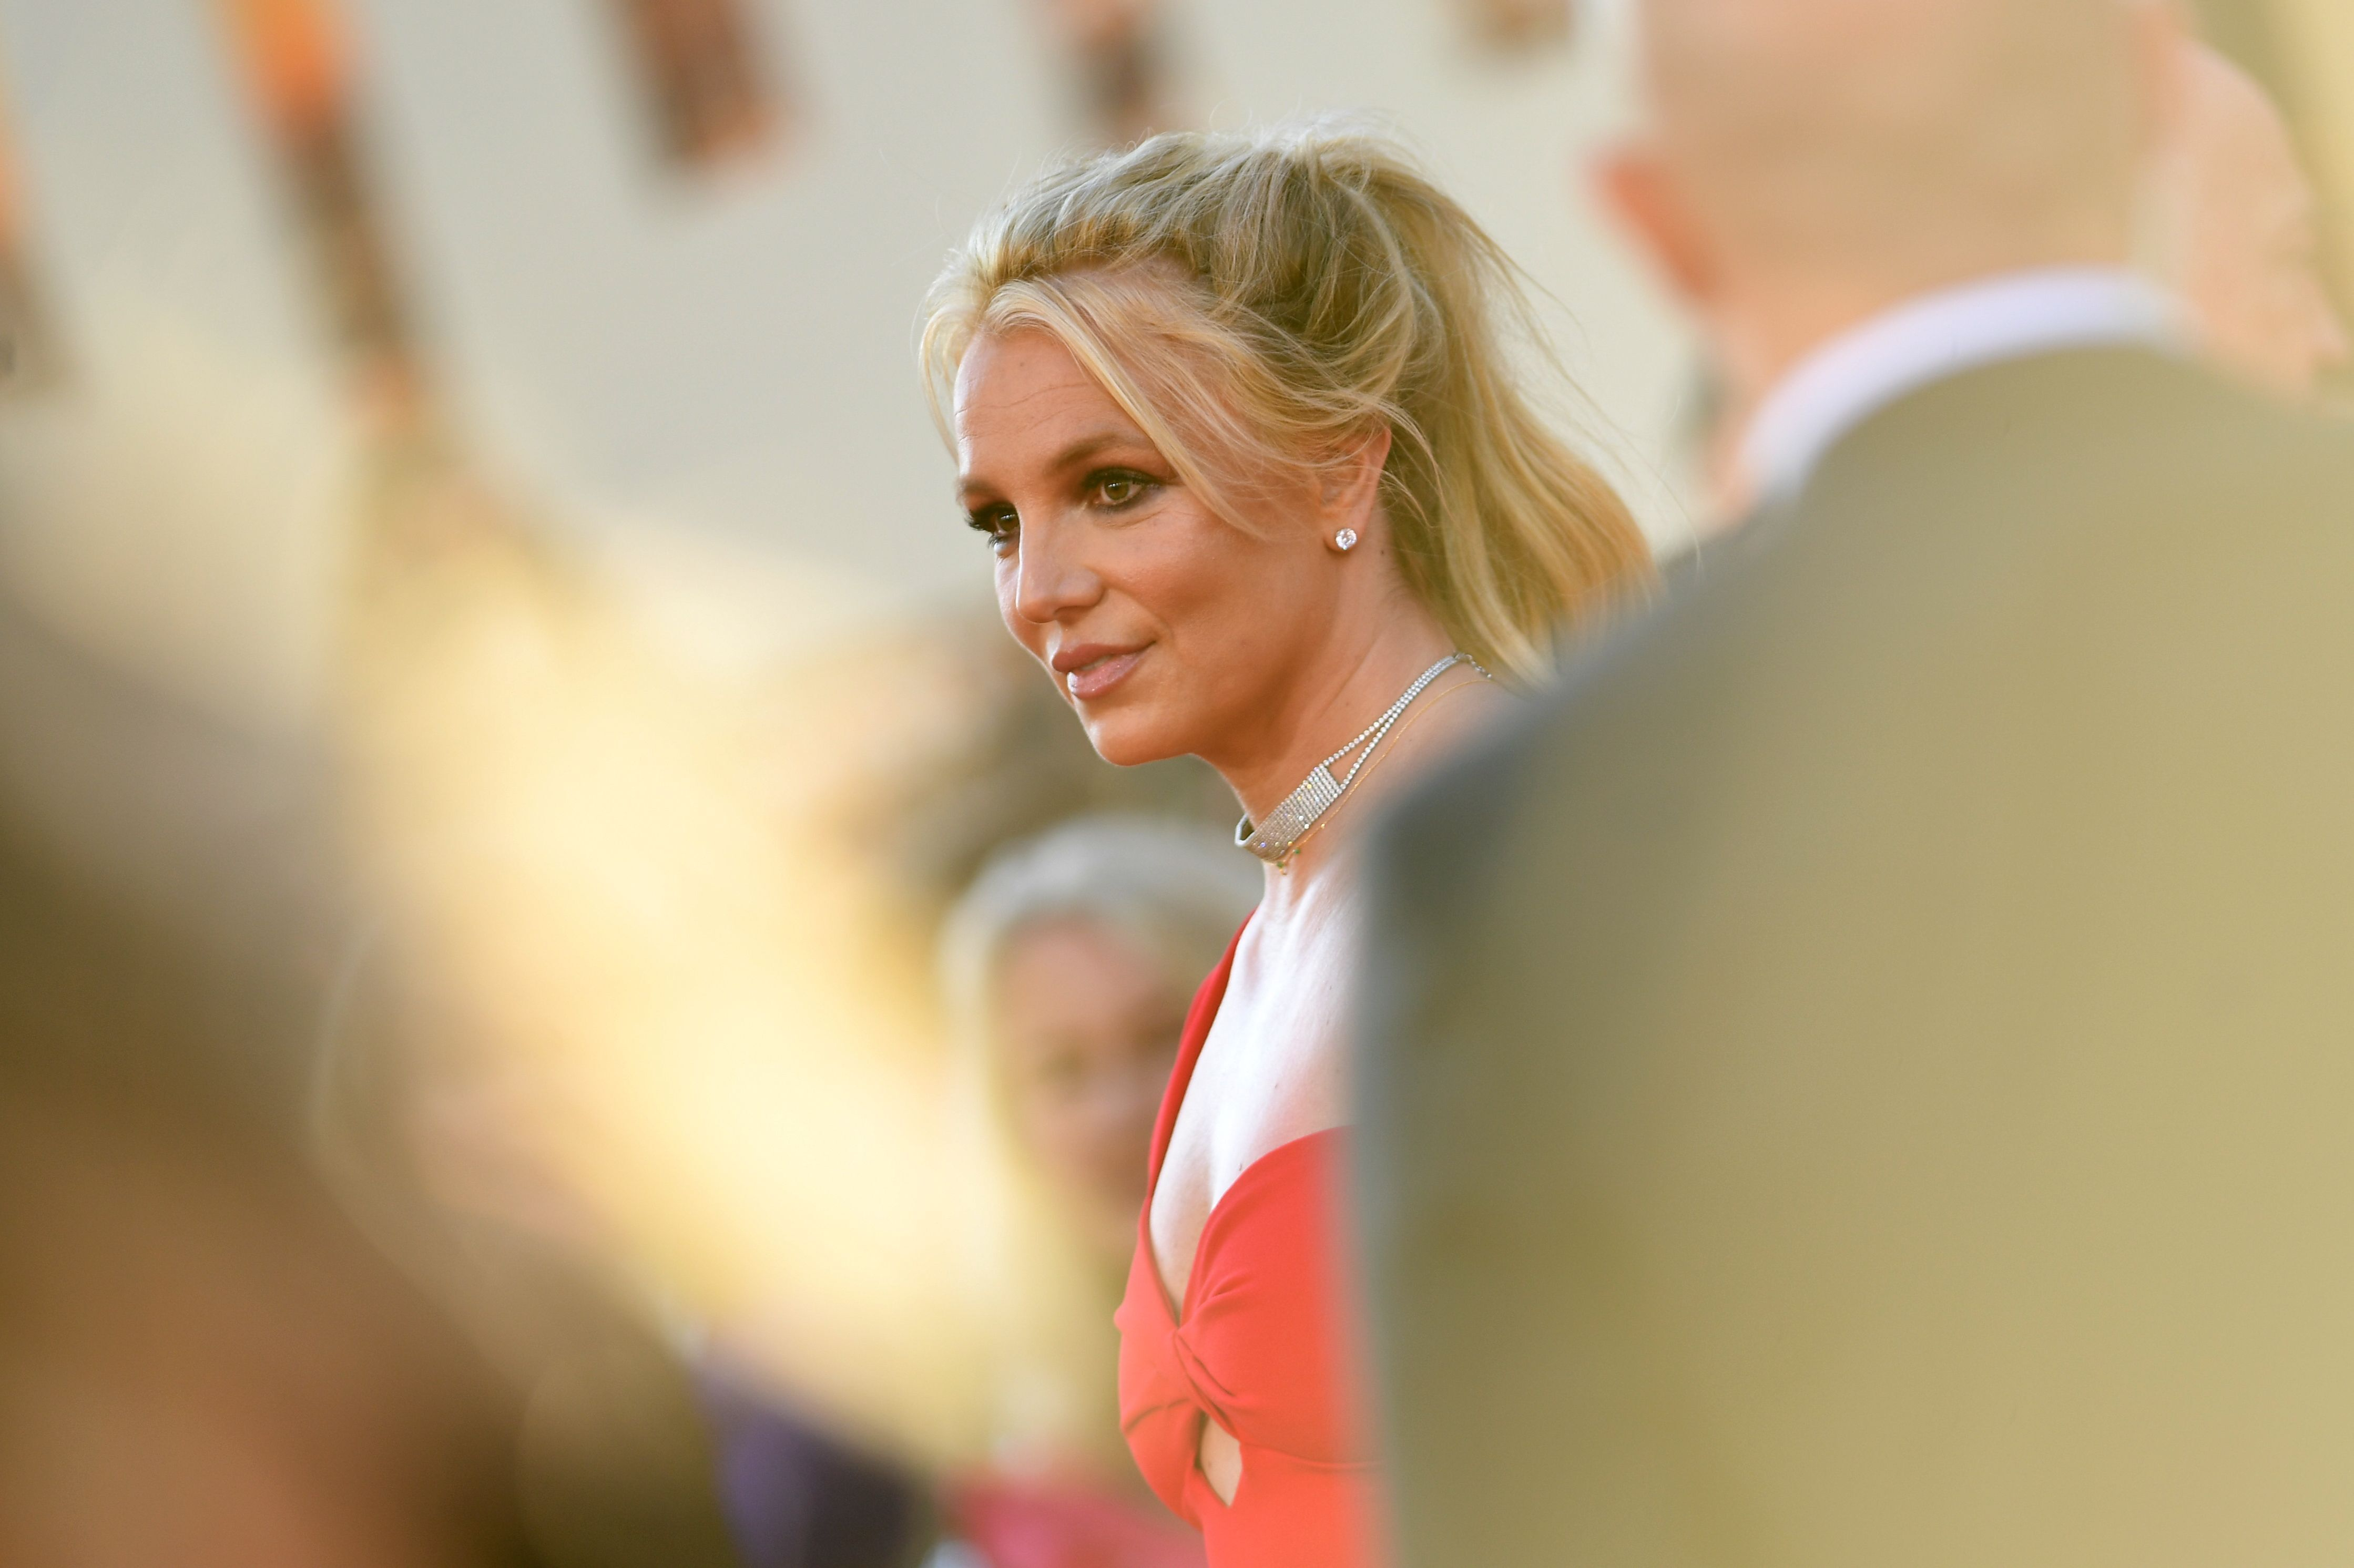 Britney Spears Won't Stop Fighting to End Conservatorship